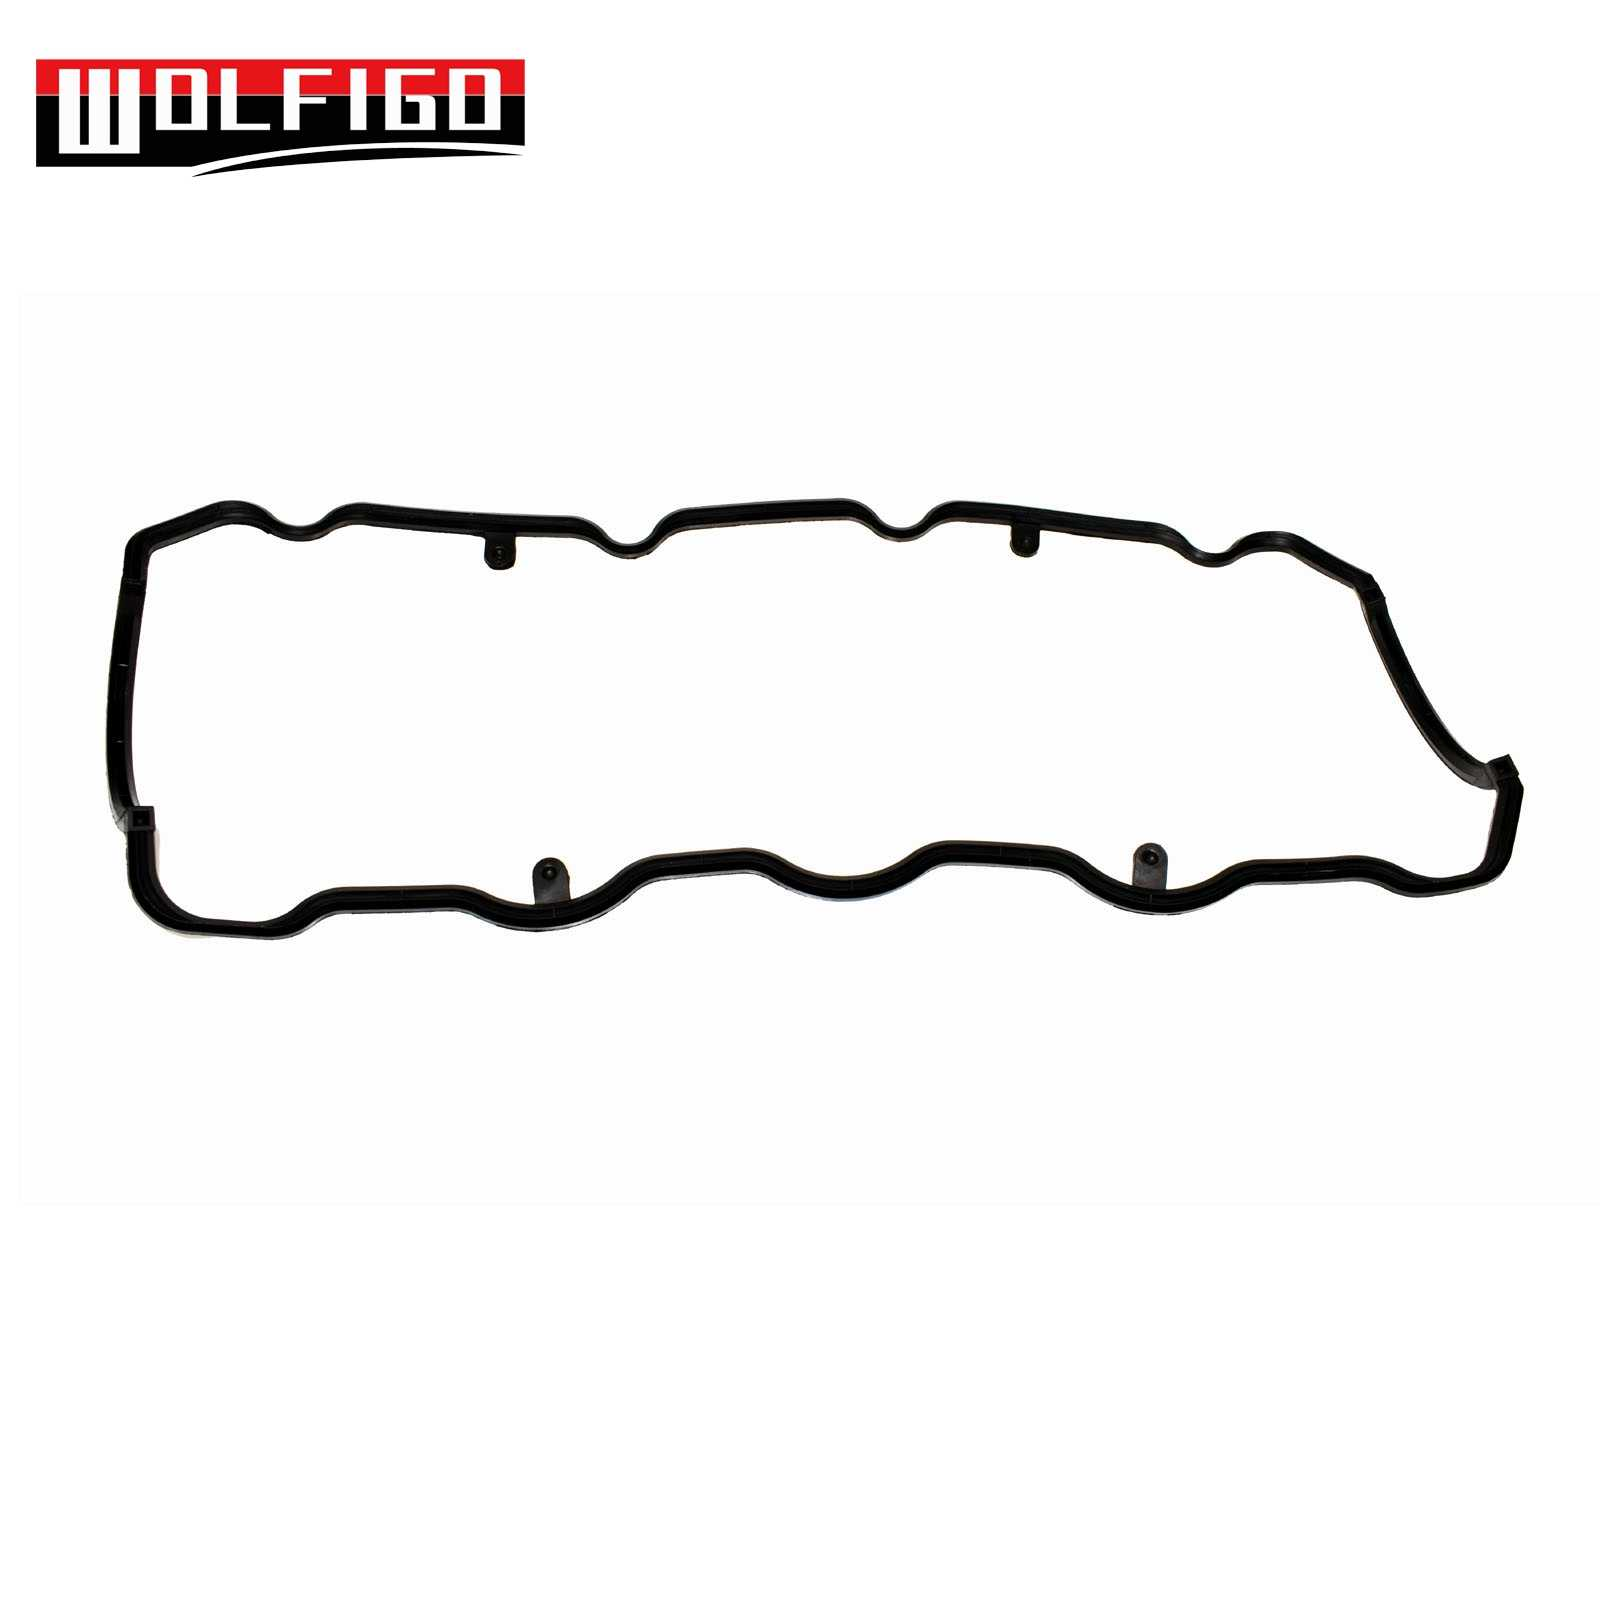 small resolution of wolfigo for vw beetle golf jetta tdi 1 9 engine valve cover gasket 038103469e 038 103